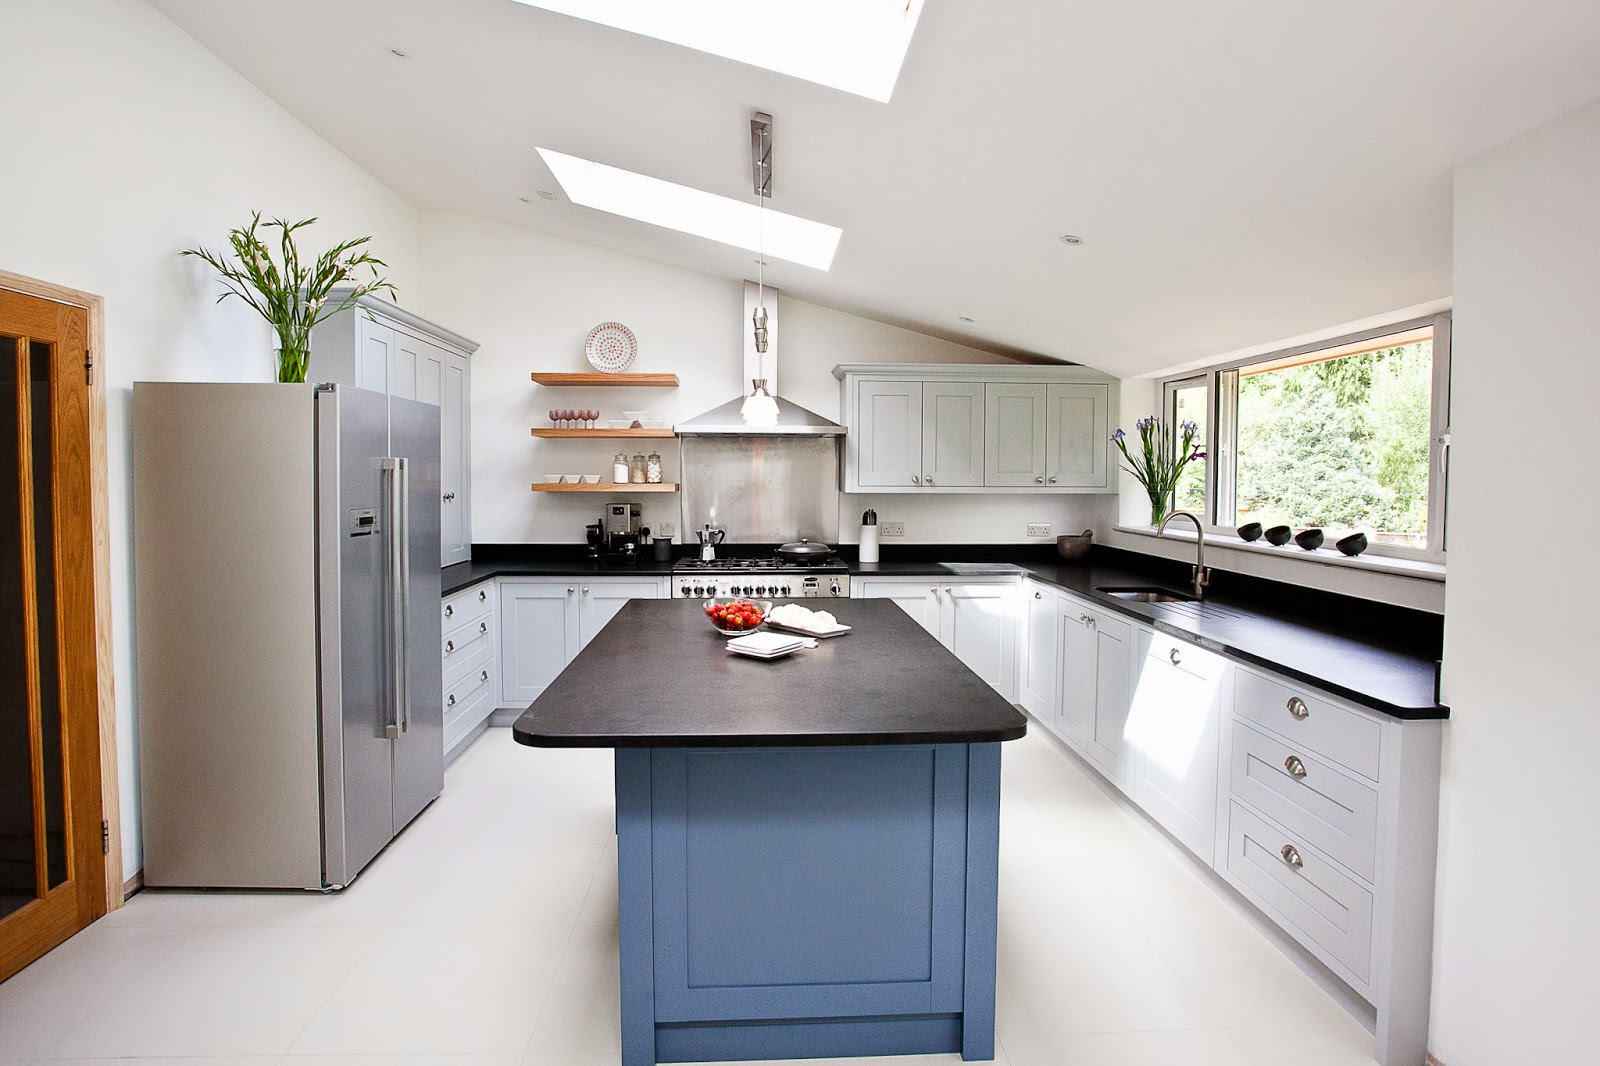 Maple & Gray Blue & Grey Kitchen. Bamboo Kitchen Floor Mat. How To Kitchen Countertops. Kitchen Floor Runners Rugs. How To Replace Kitchen Backsplash. Mosaic Tile For Kitchen Backsplash. Kitchen Backsplash Granite. Kitchen Yellow Paint Colors. Kitchen Wall Colors With Dark Wood Cabinets